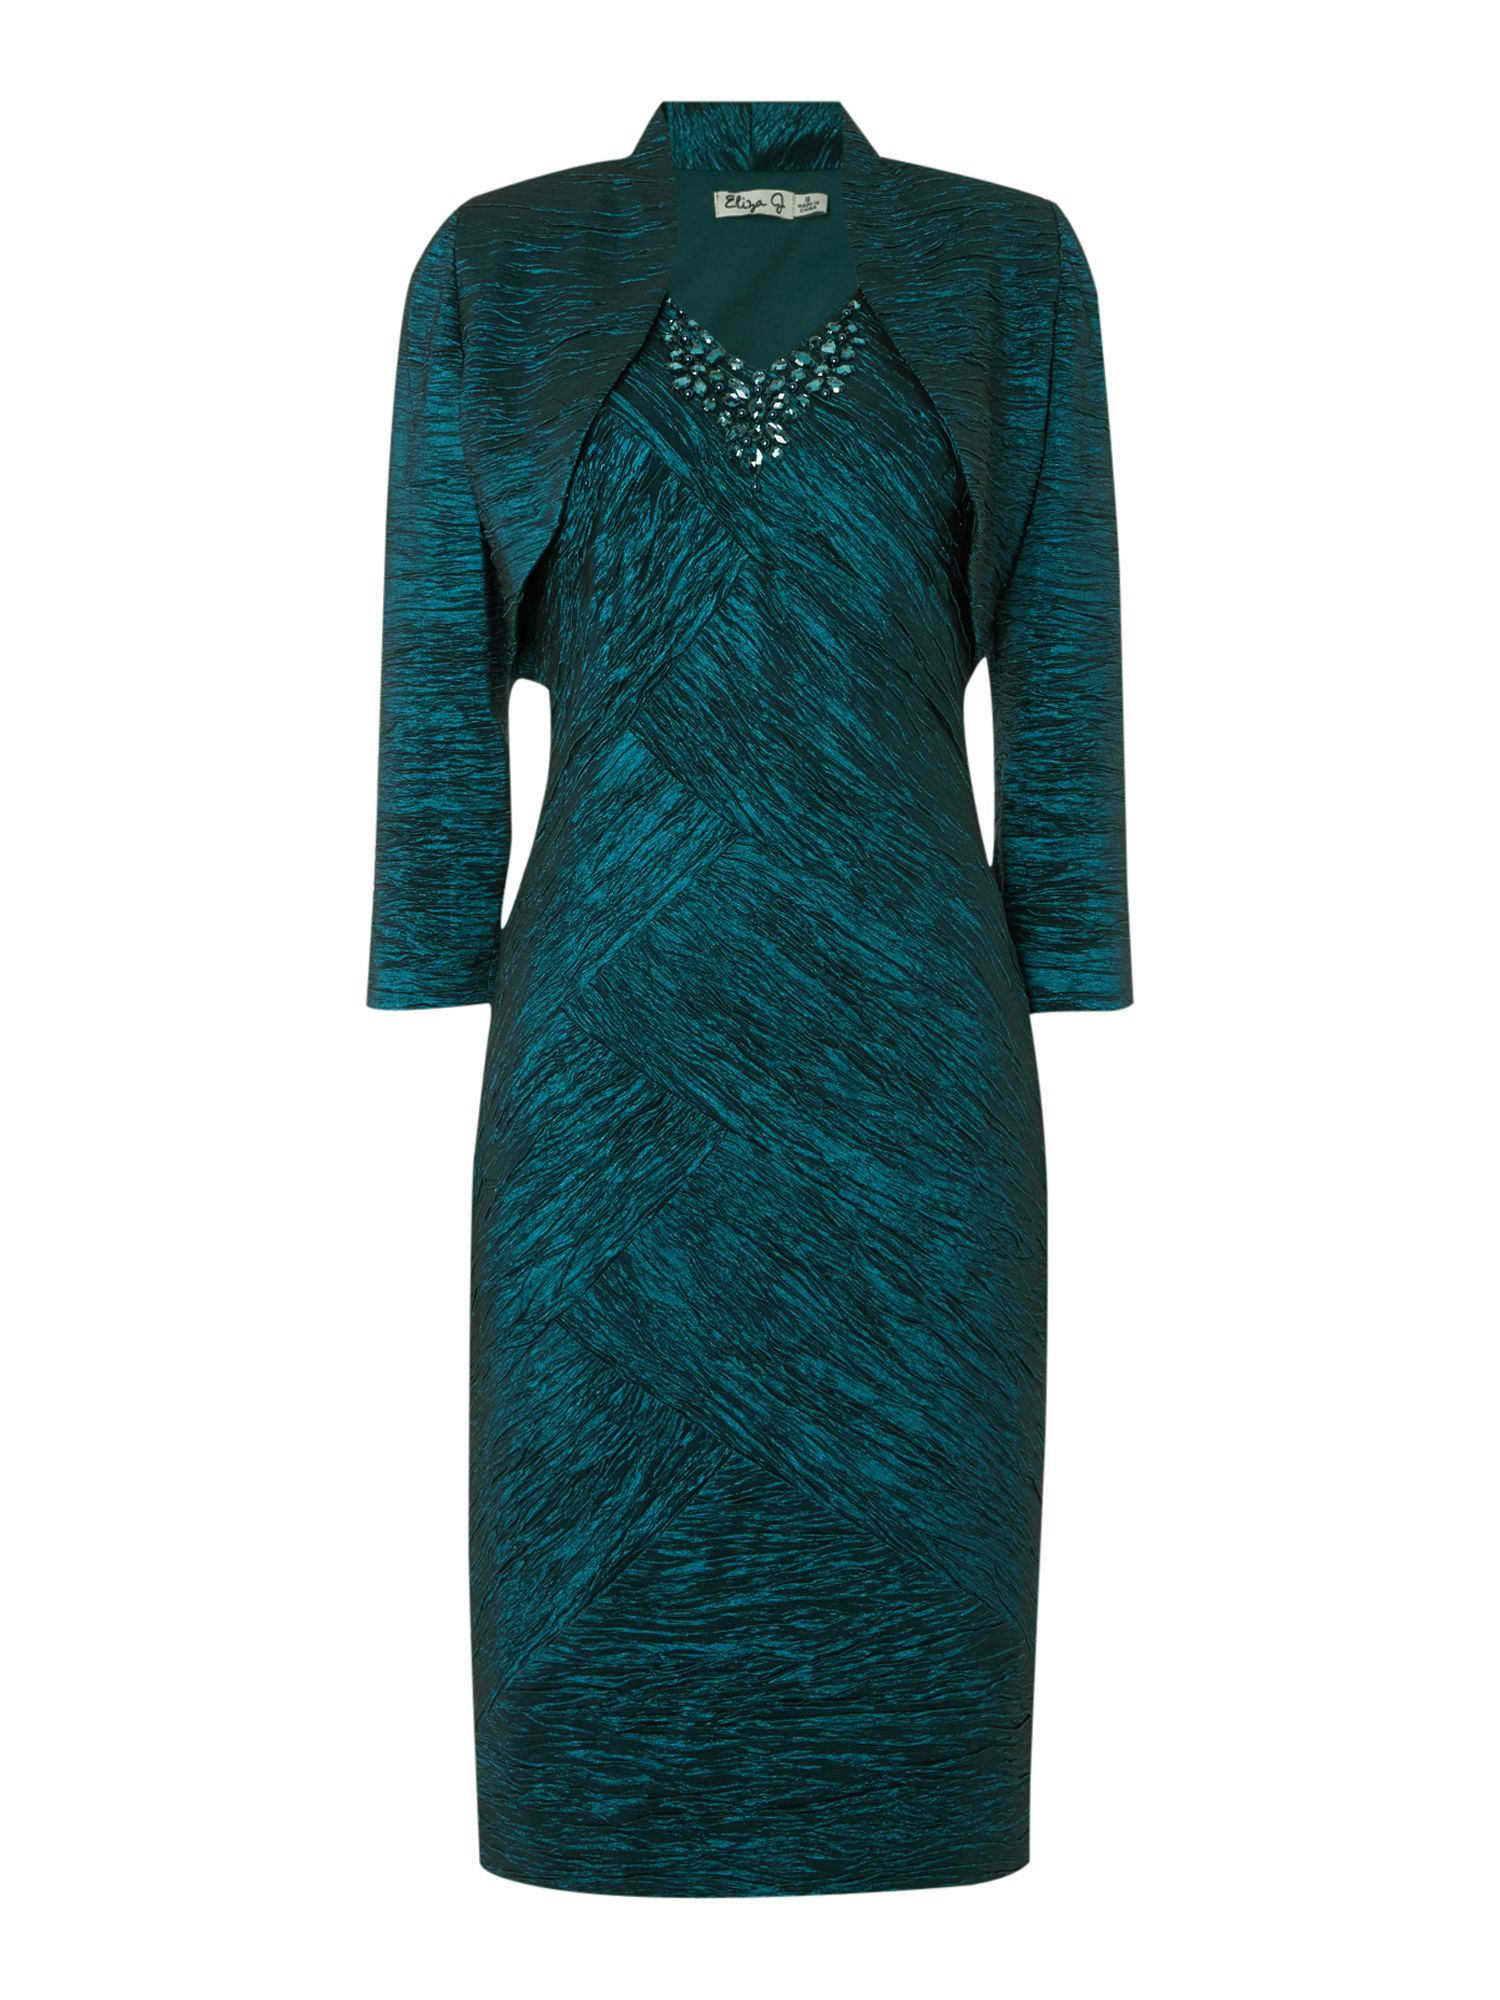 Eliza J Crushed taff dress with jacket, Green